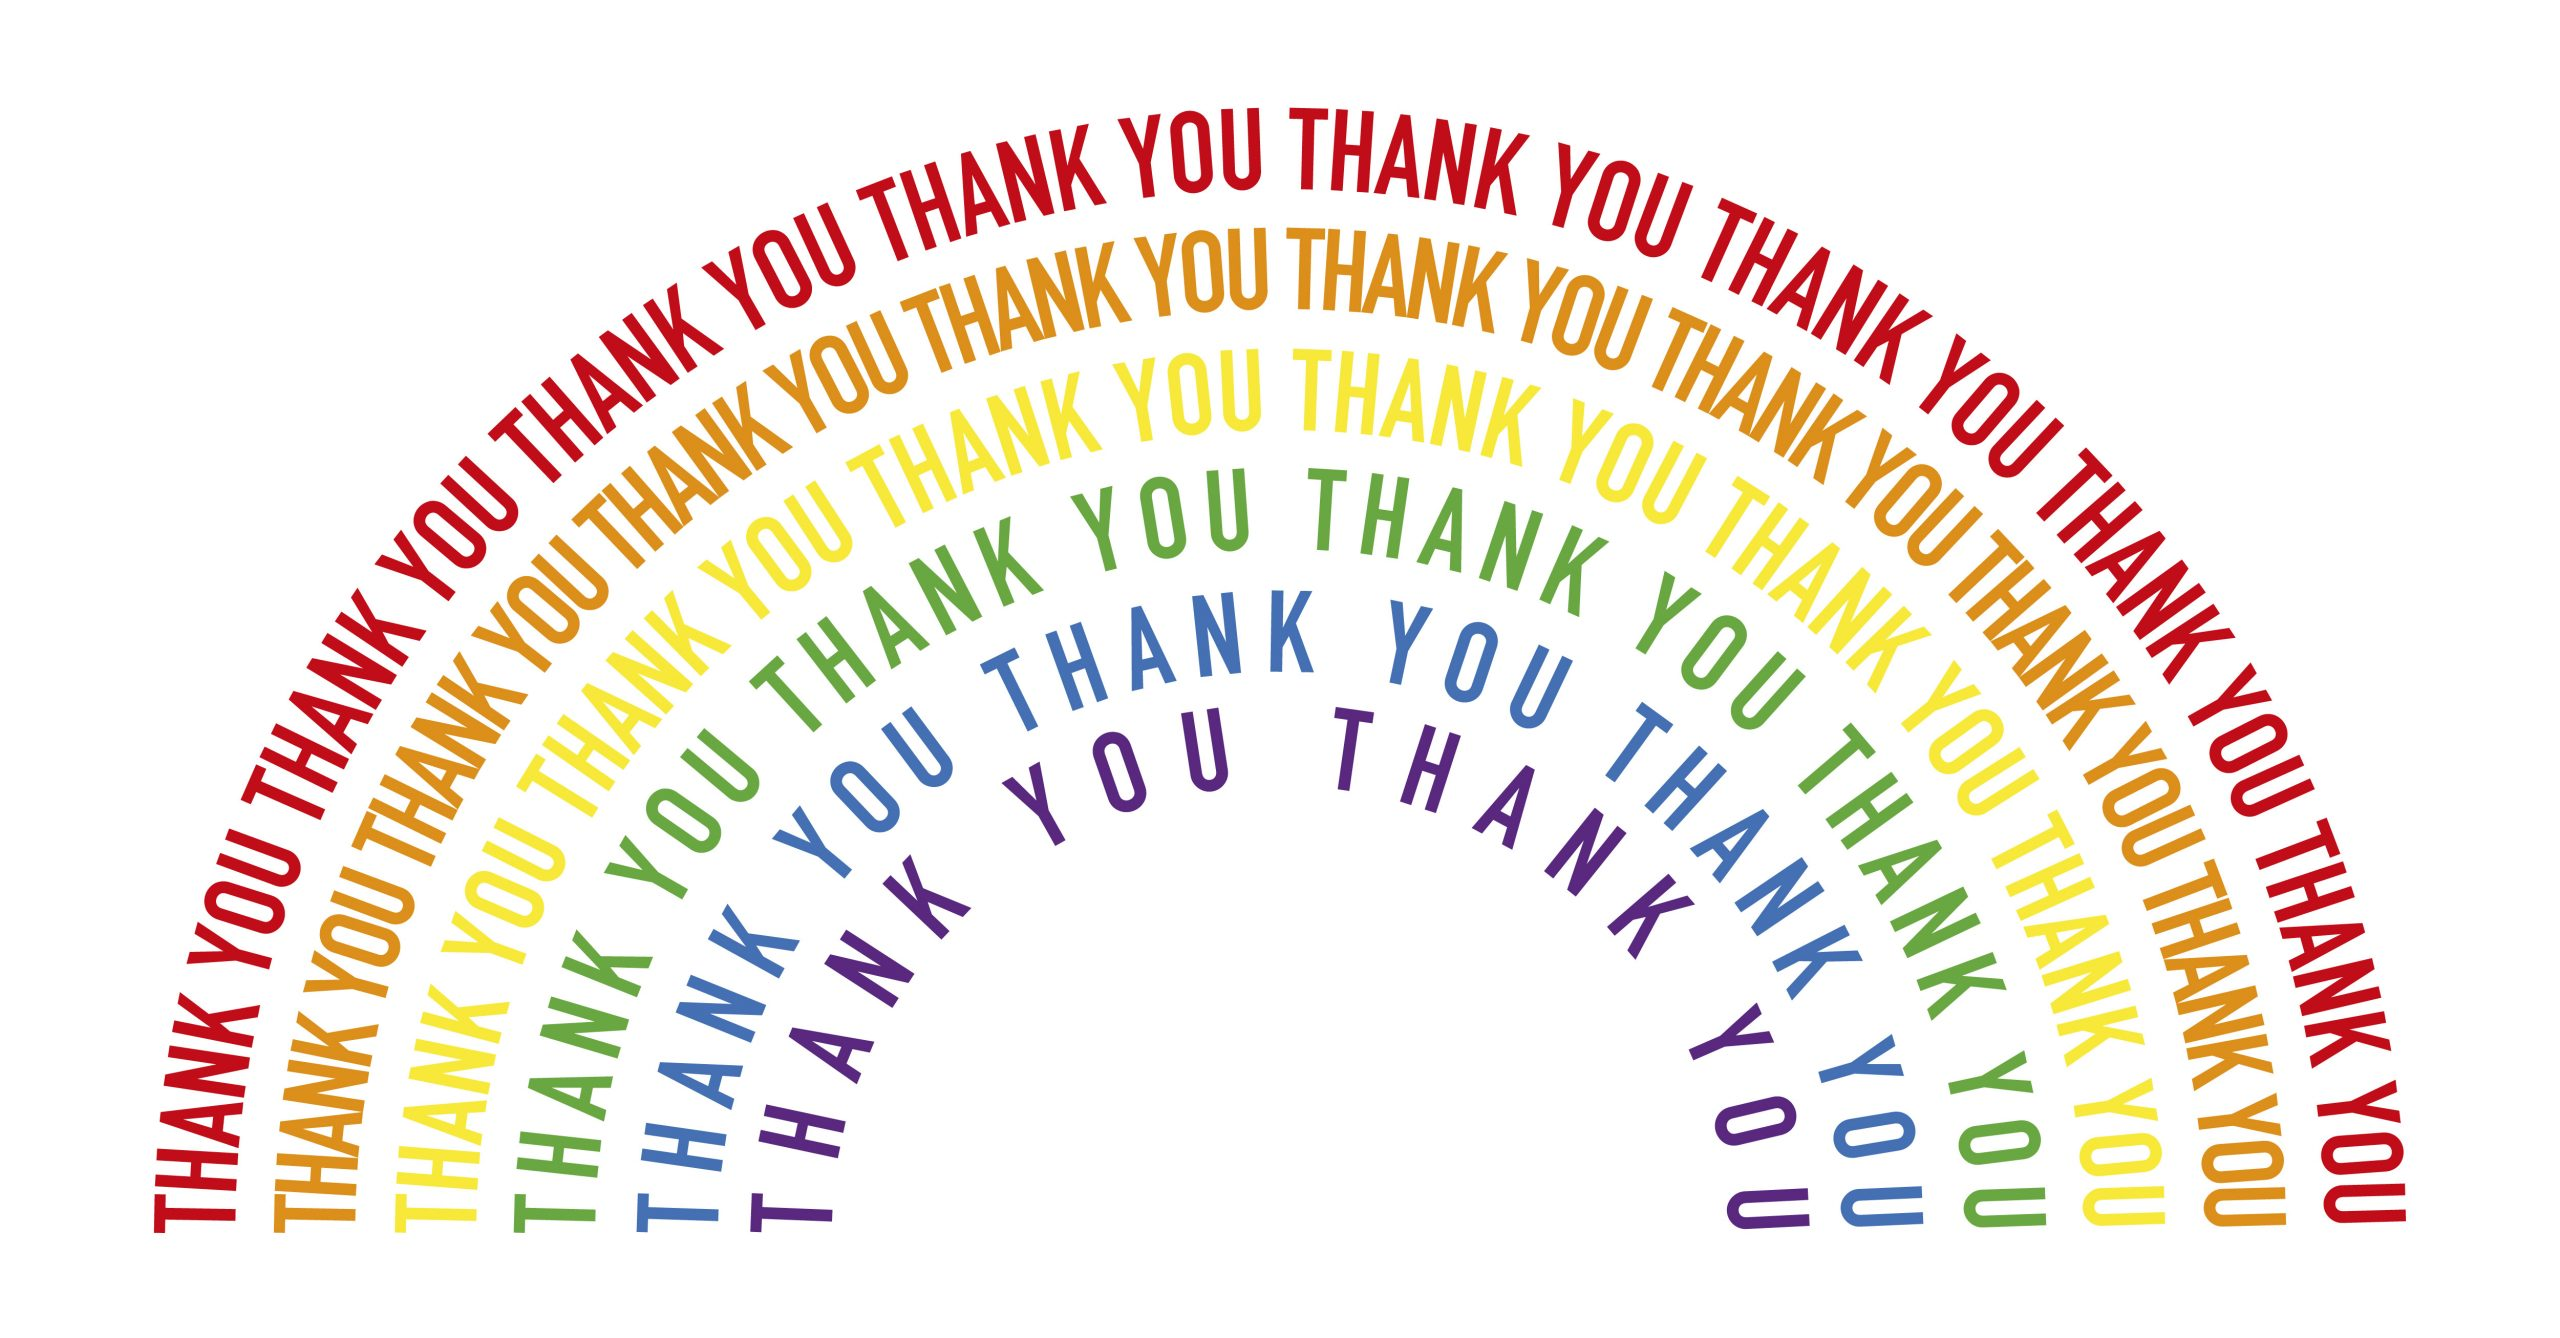 3 Thoughtful Ways To Thank Employees For Their Dedication